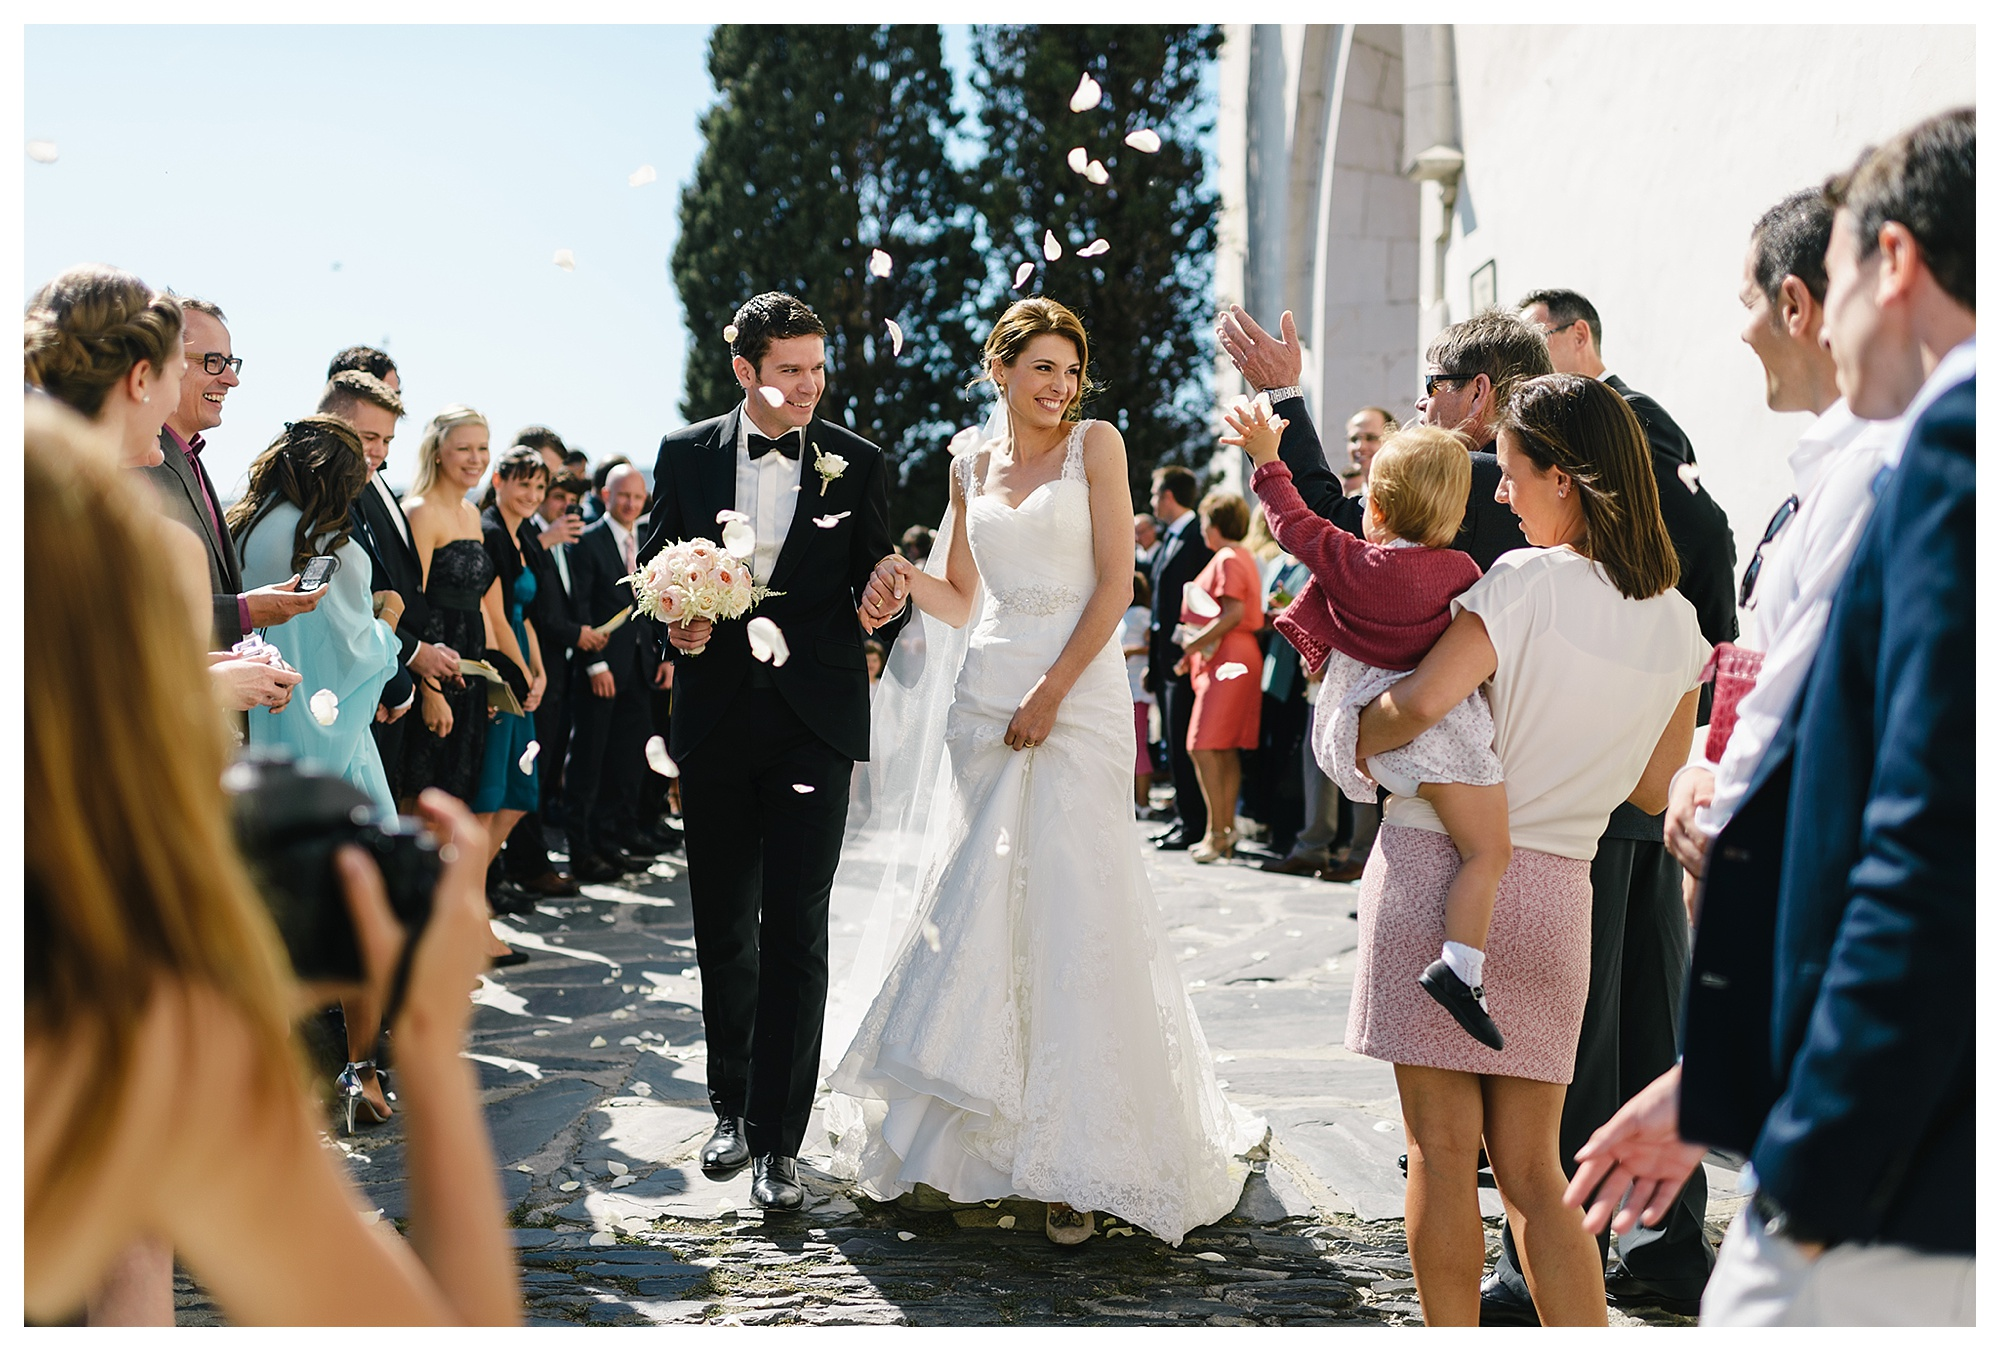 Fotograf Konstanz - Wedding Spain Cadaques Elmar Feuerbacher Photography 21 - Als Destination Wedding Fotograf in Cadaqués, Spanien  - 21 -